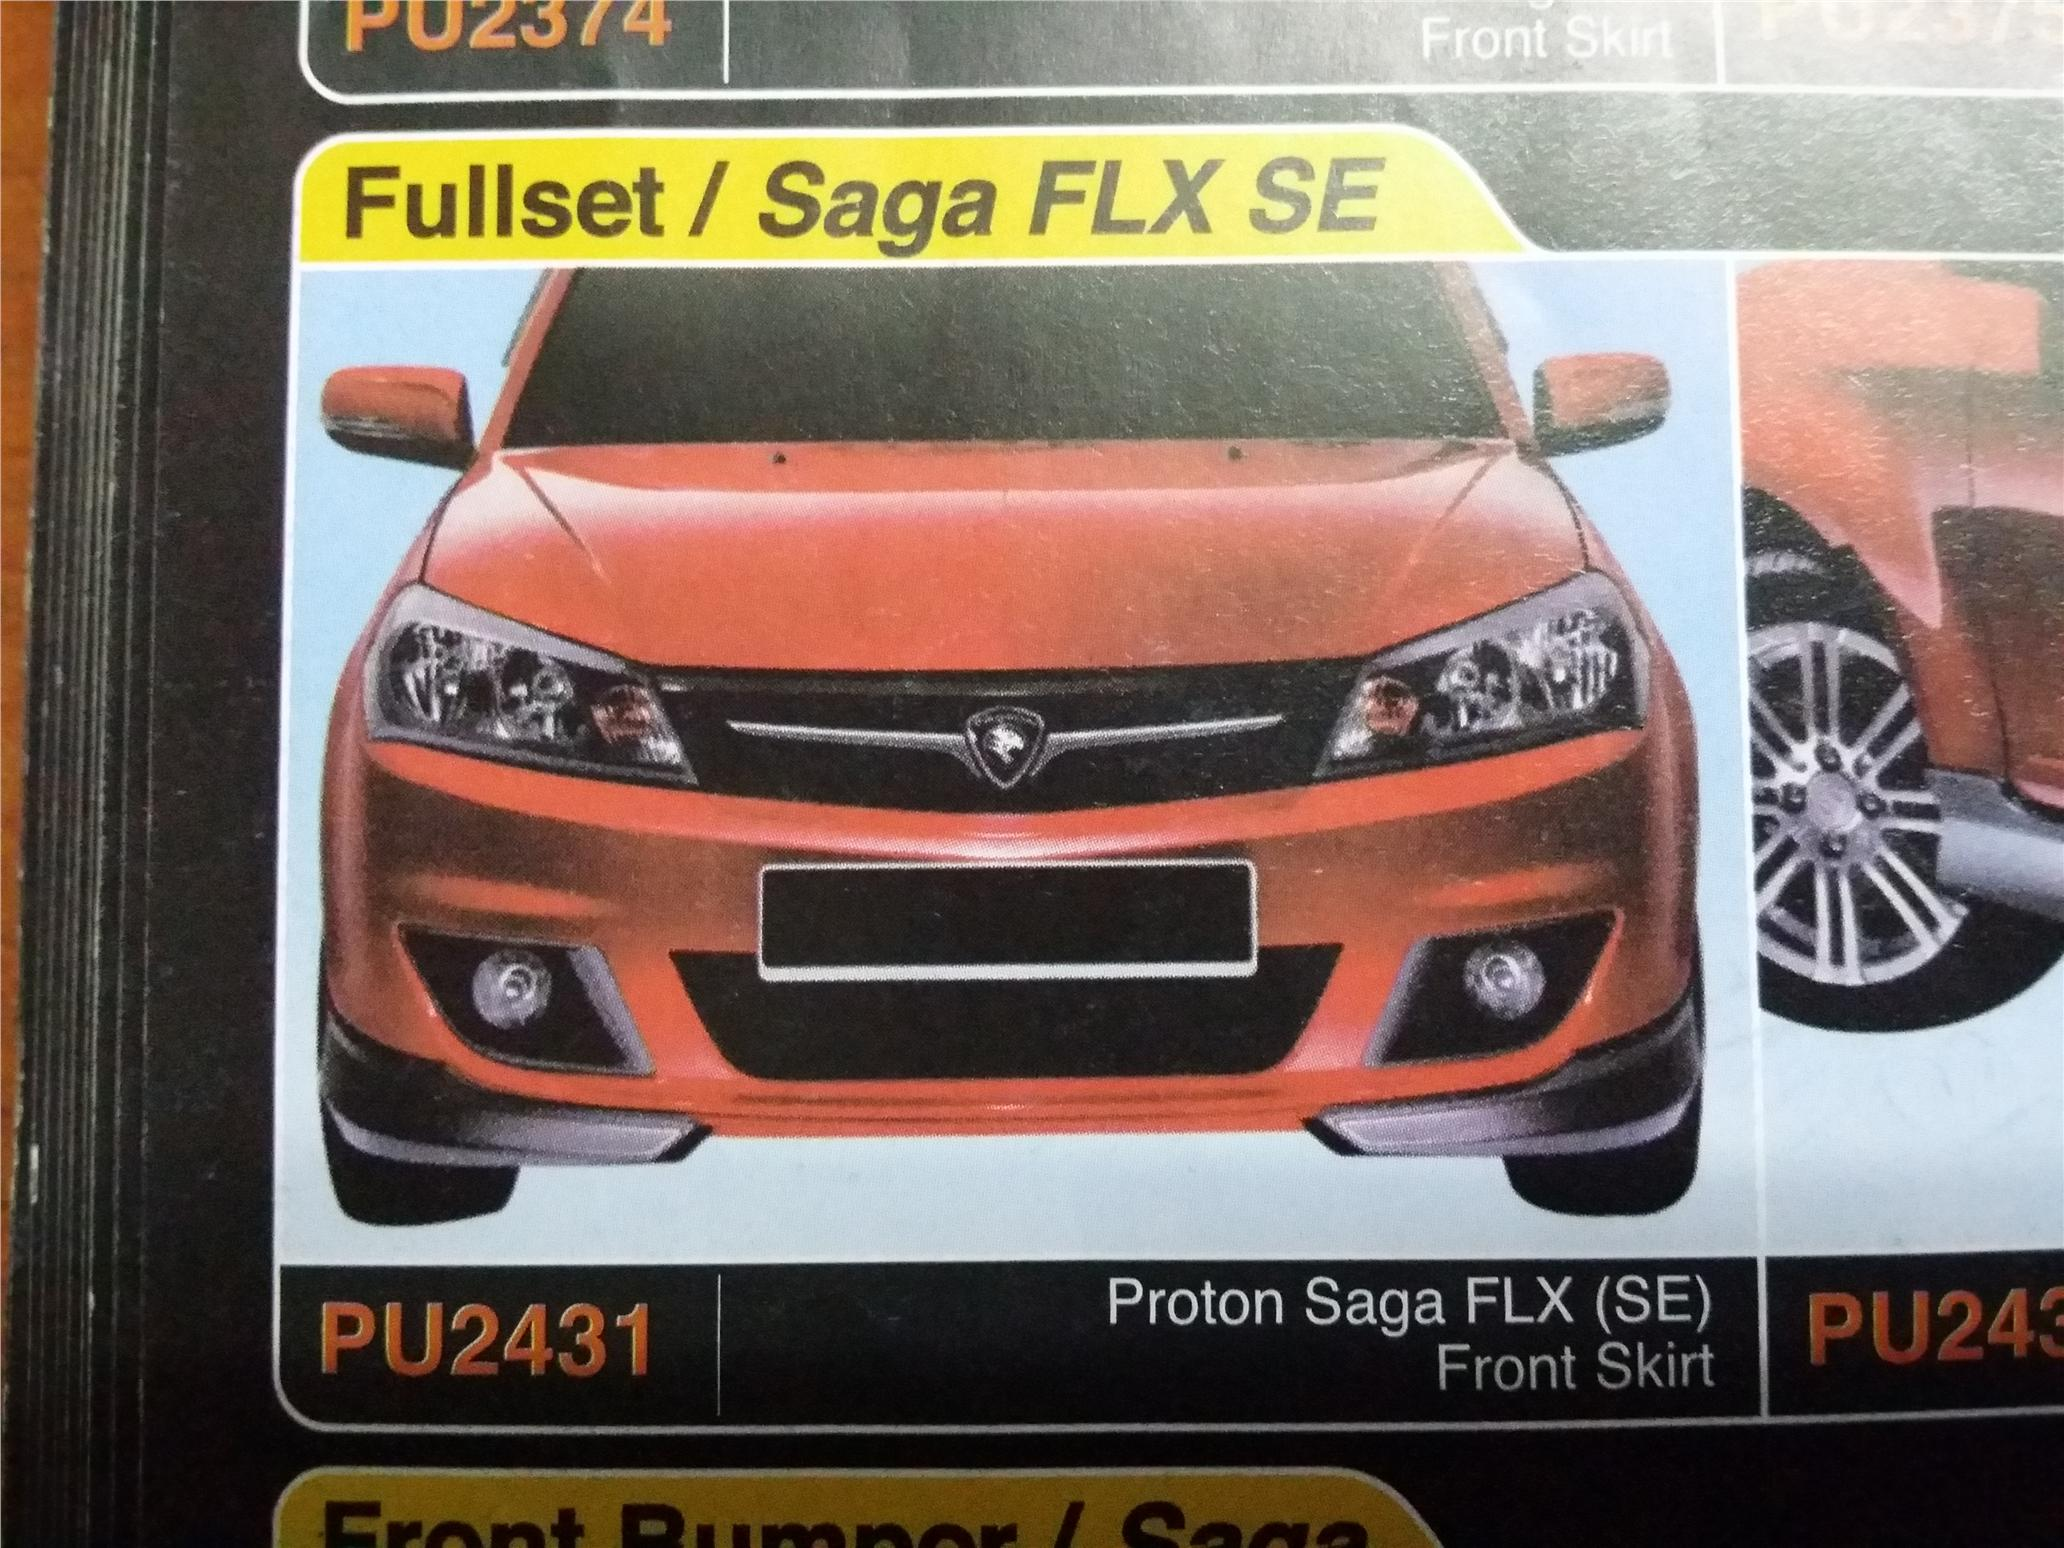 Proton Saga Flx Se Front Skirt Pu24 End 3 11 2016 10 15 Am